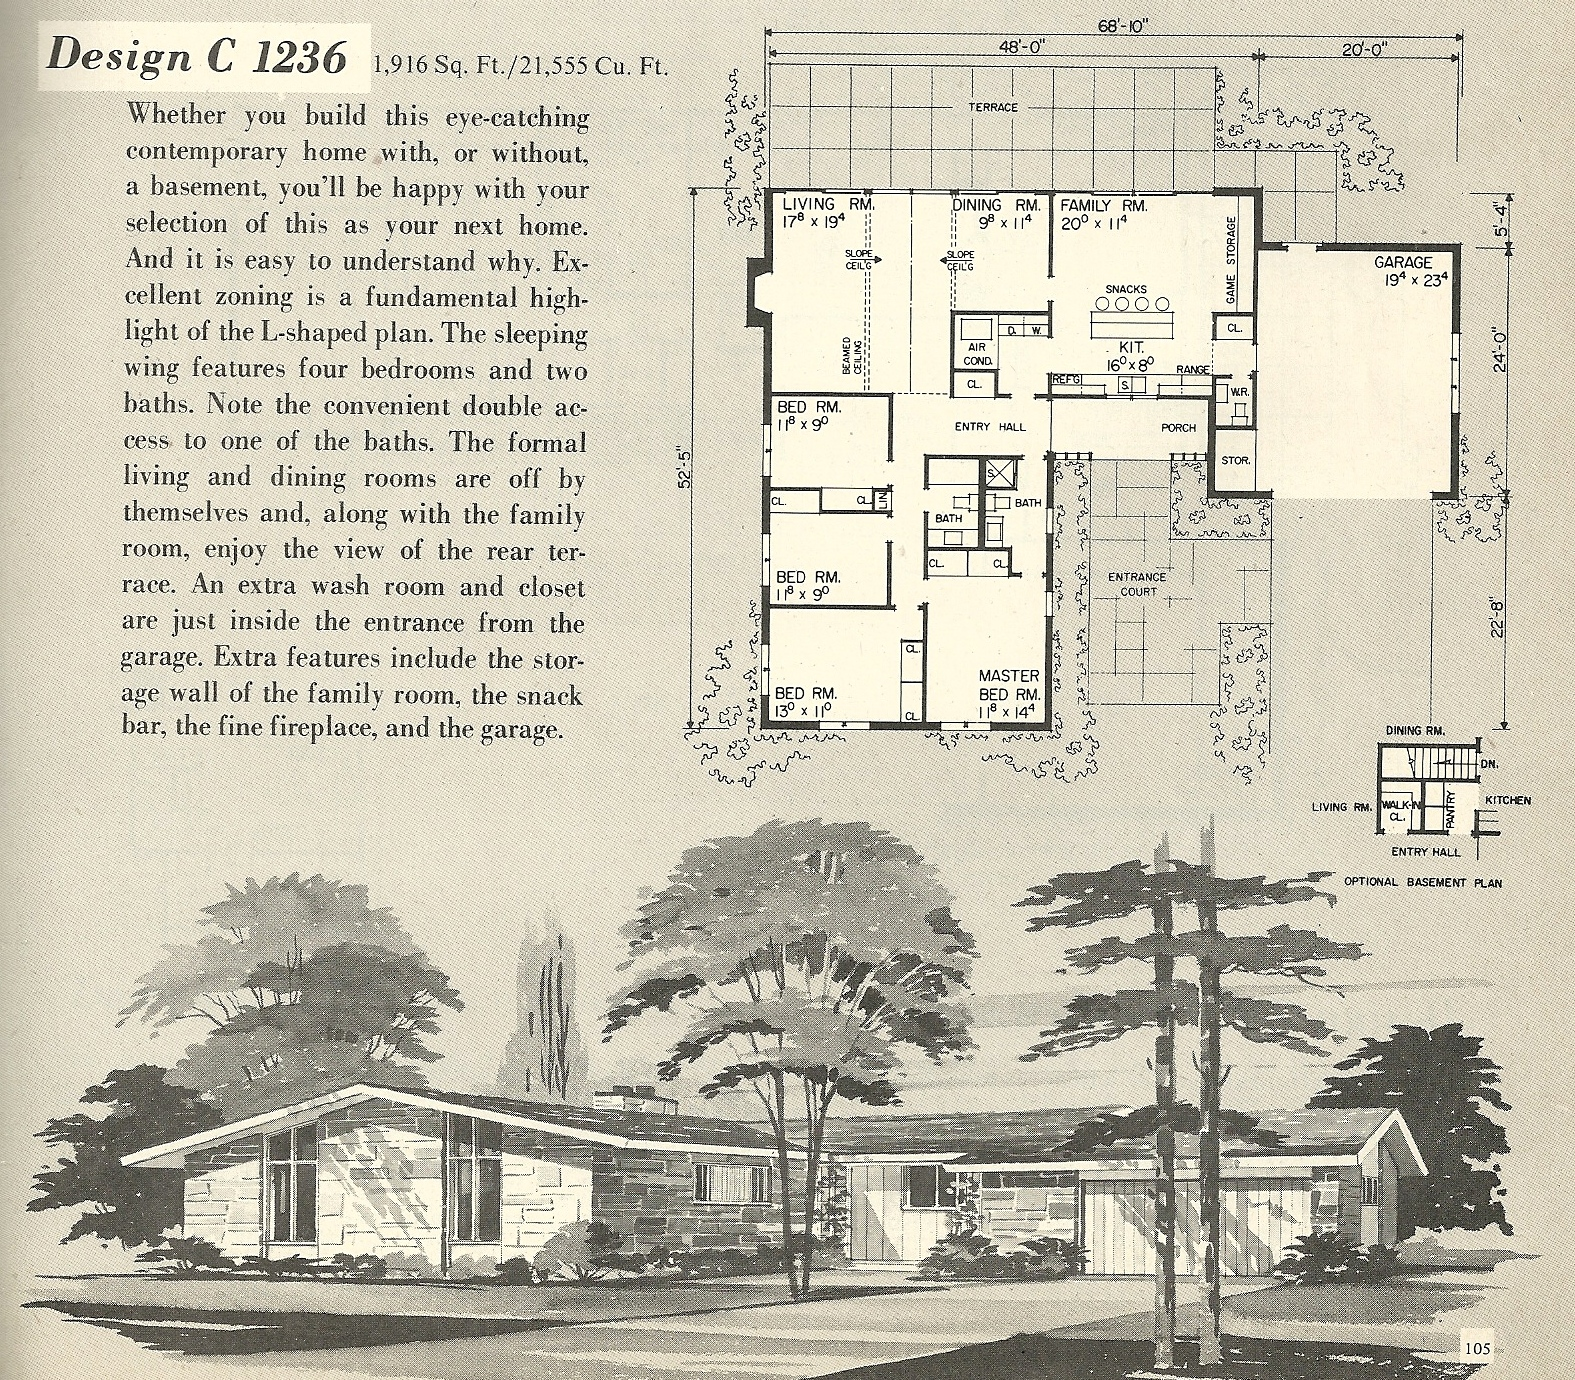 Vintage house plans 1236 antique alter ego for Mid century modern house plan